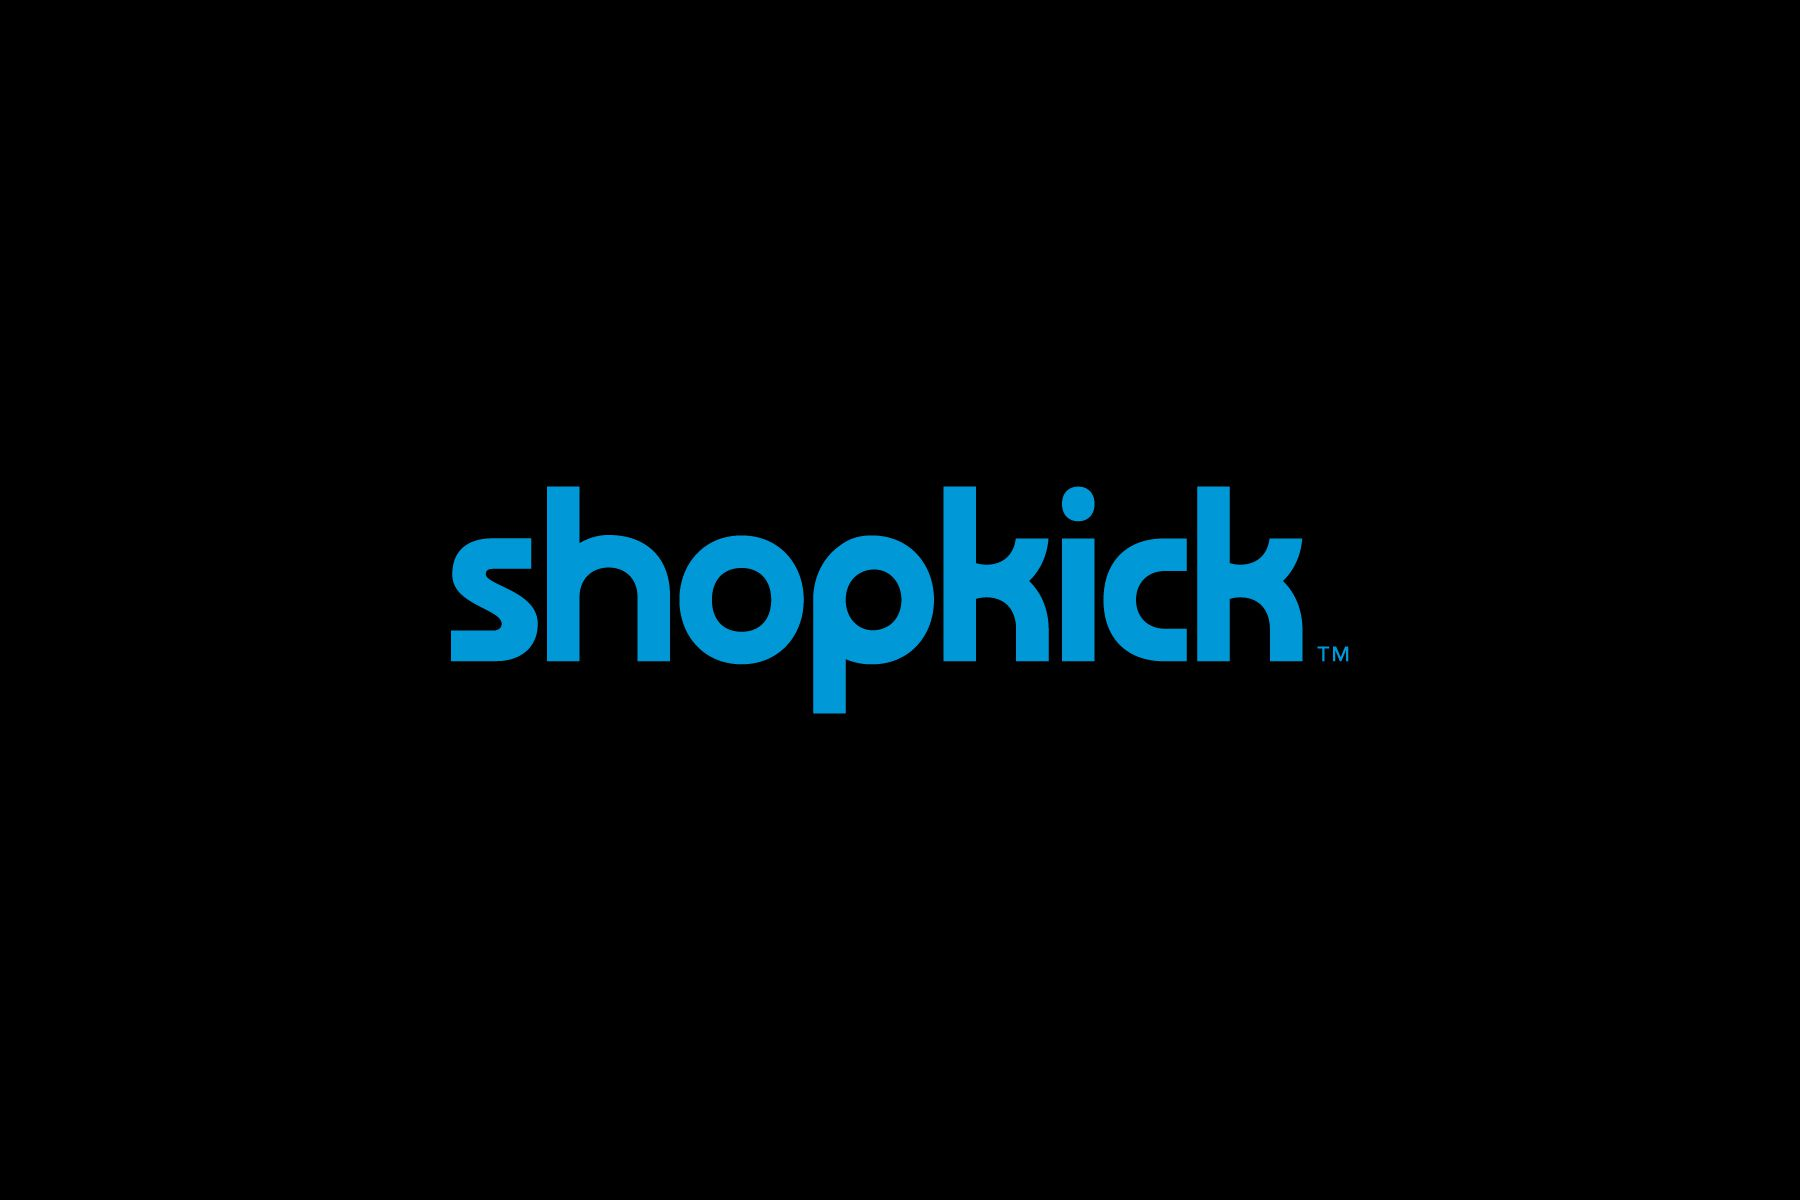 Maximize Your Shopkick Rewards With 6 Quick Tips